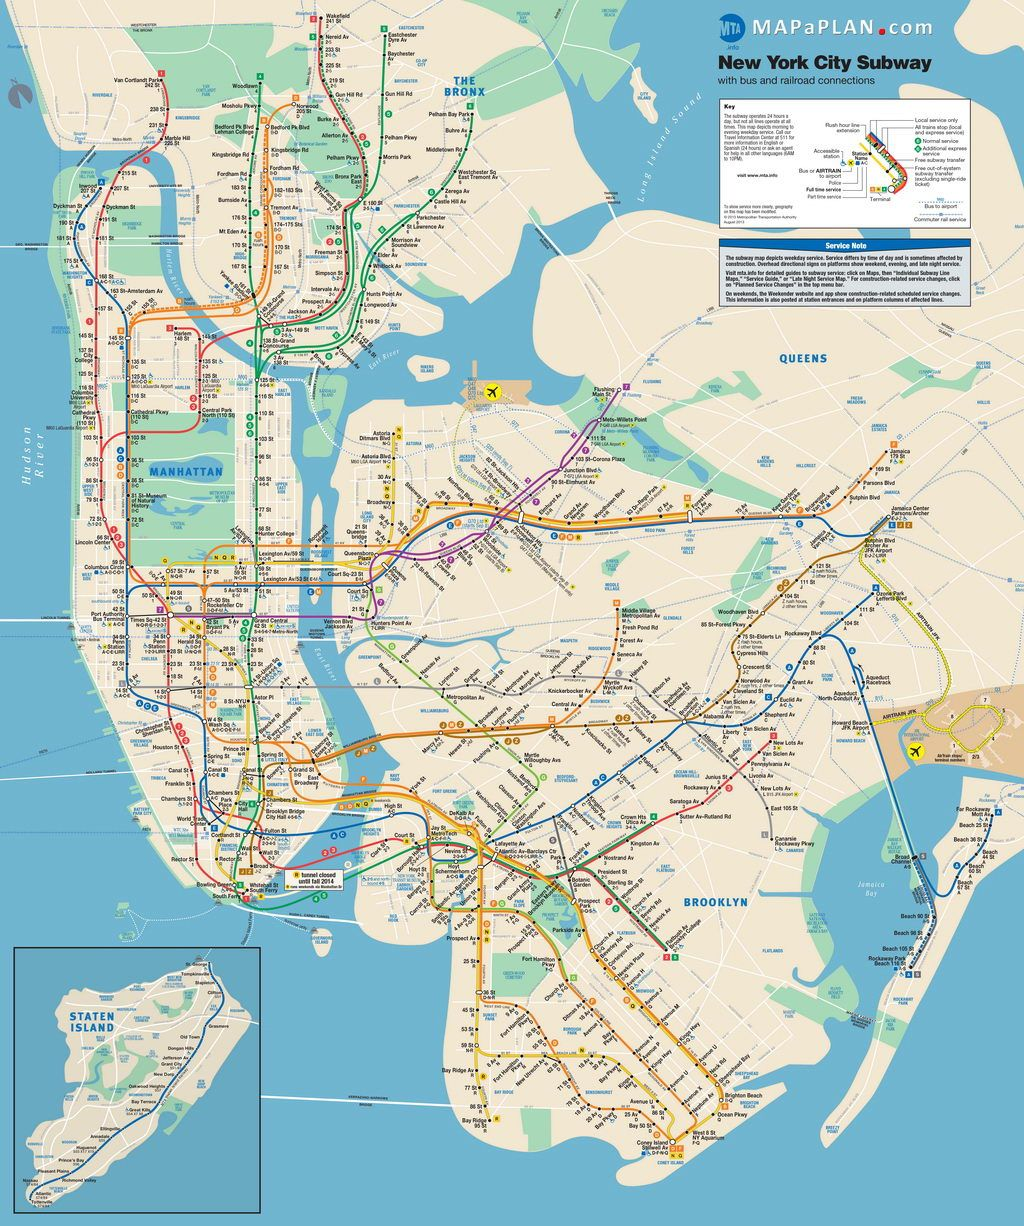 greatthingstodowithkidschildreninteractivecolorfulnew – New York Map With Tourist Attractions